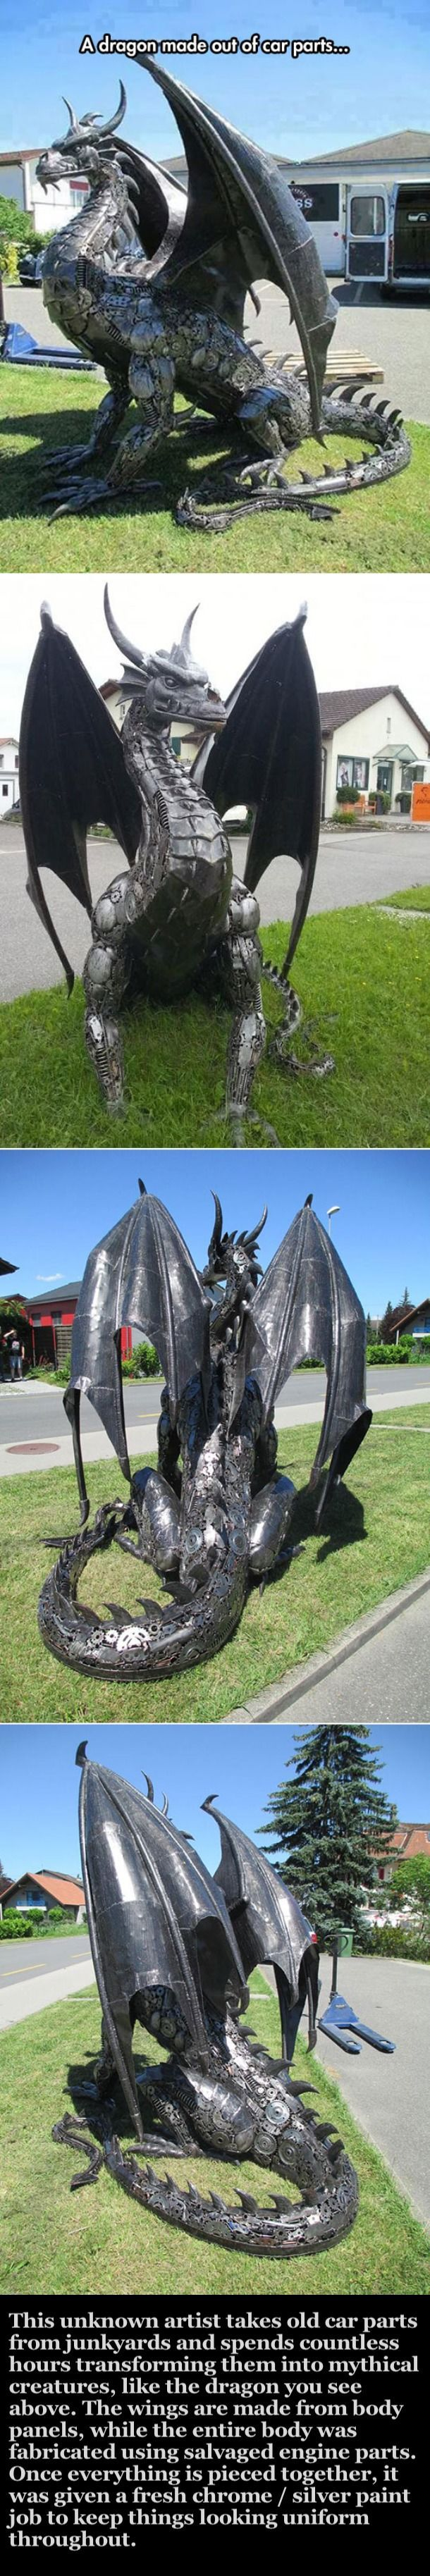 Artist Turns Old Car Parts It Into A Mythical Dragon Pictures, Photos, and Images for Facebook, Tumblr, Pinterest, and Twitter